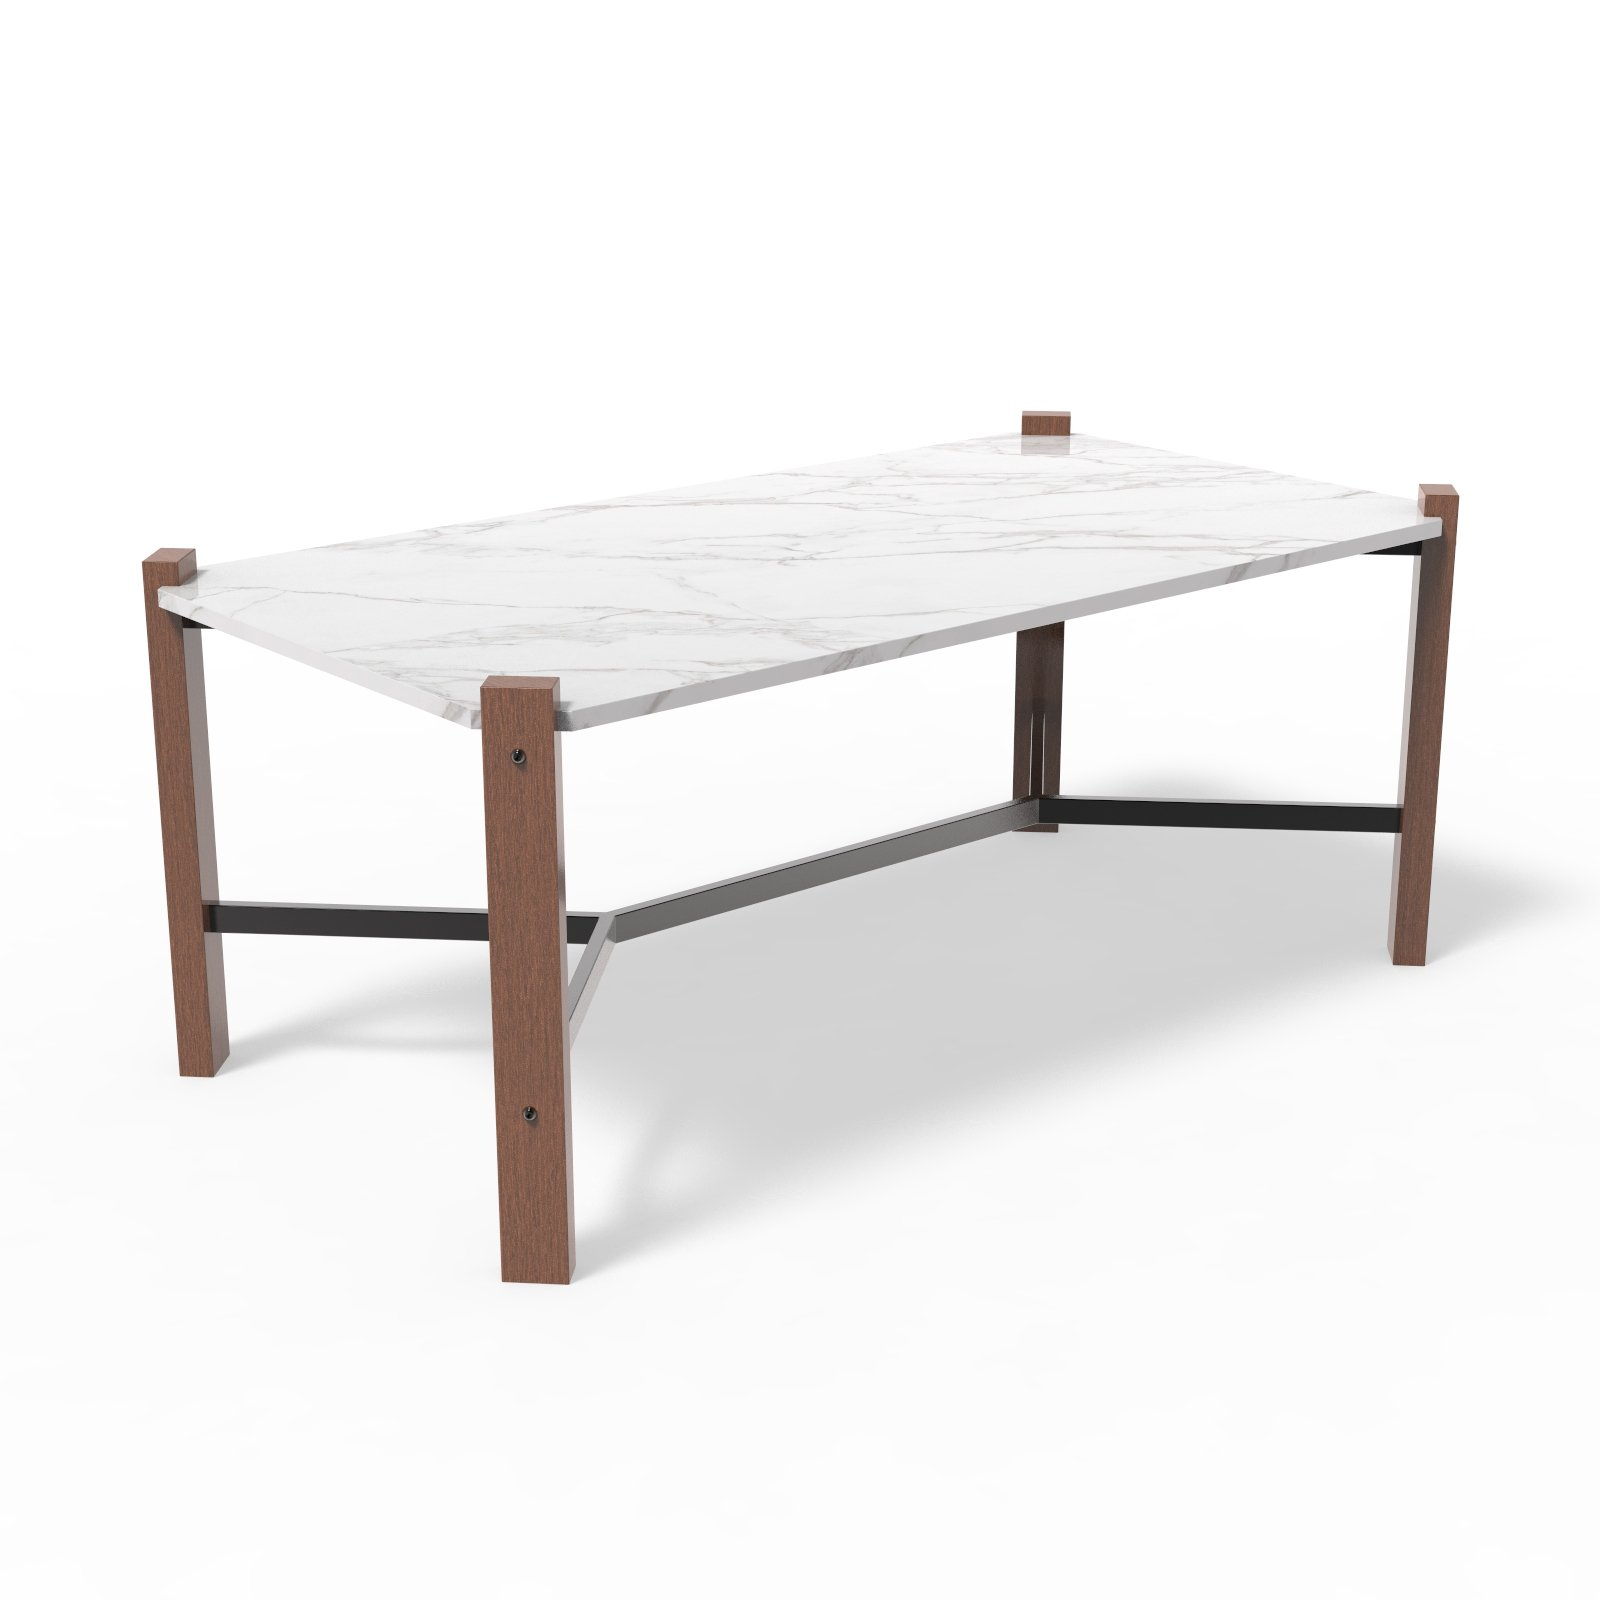 Giantex Modern Coffee Table White Wood Look Accent